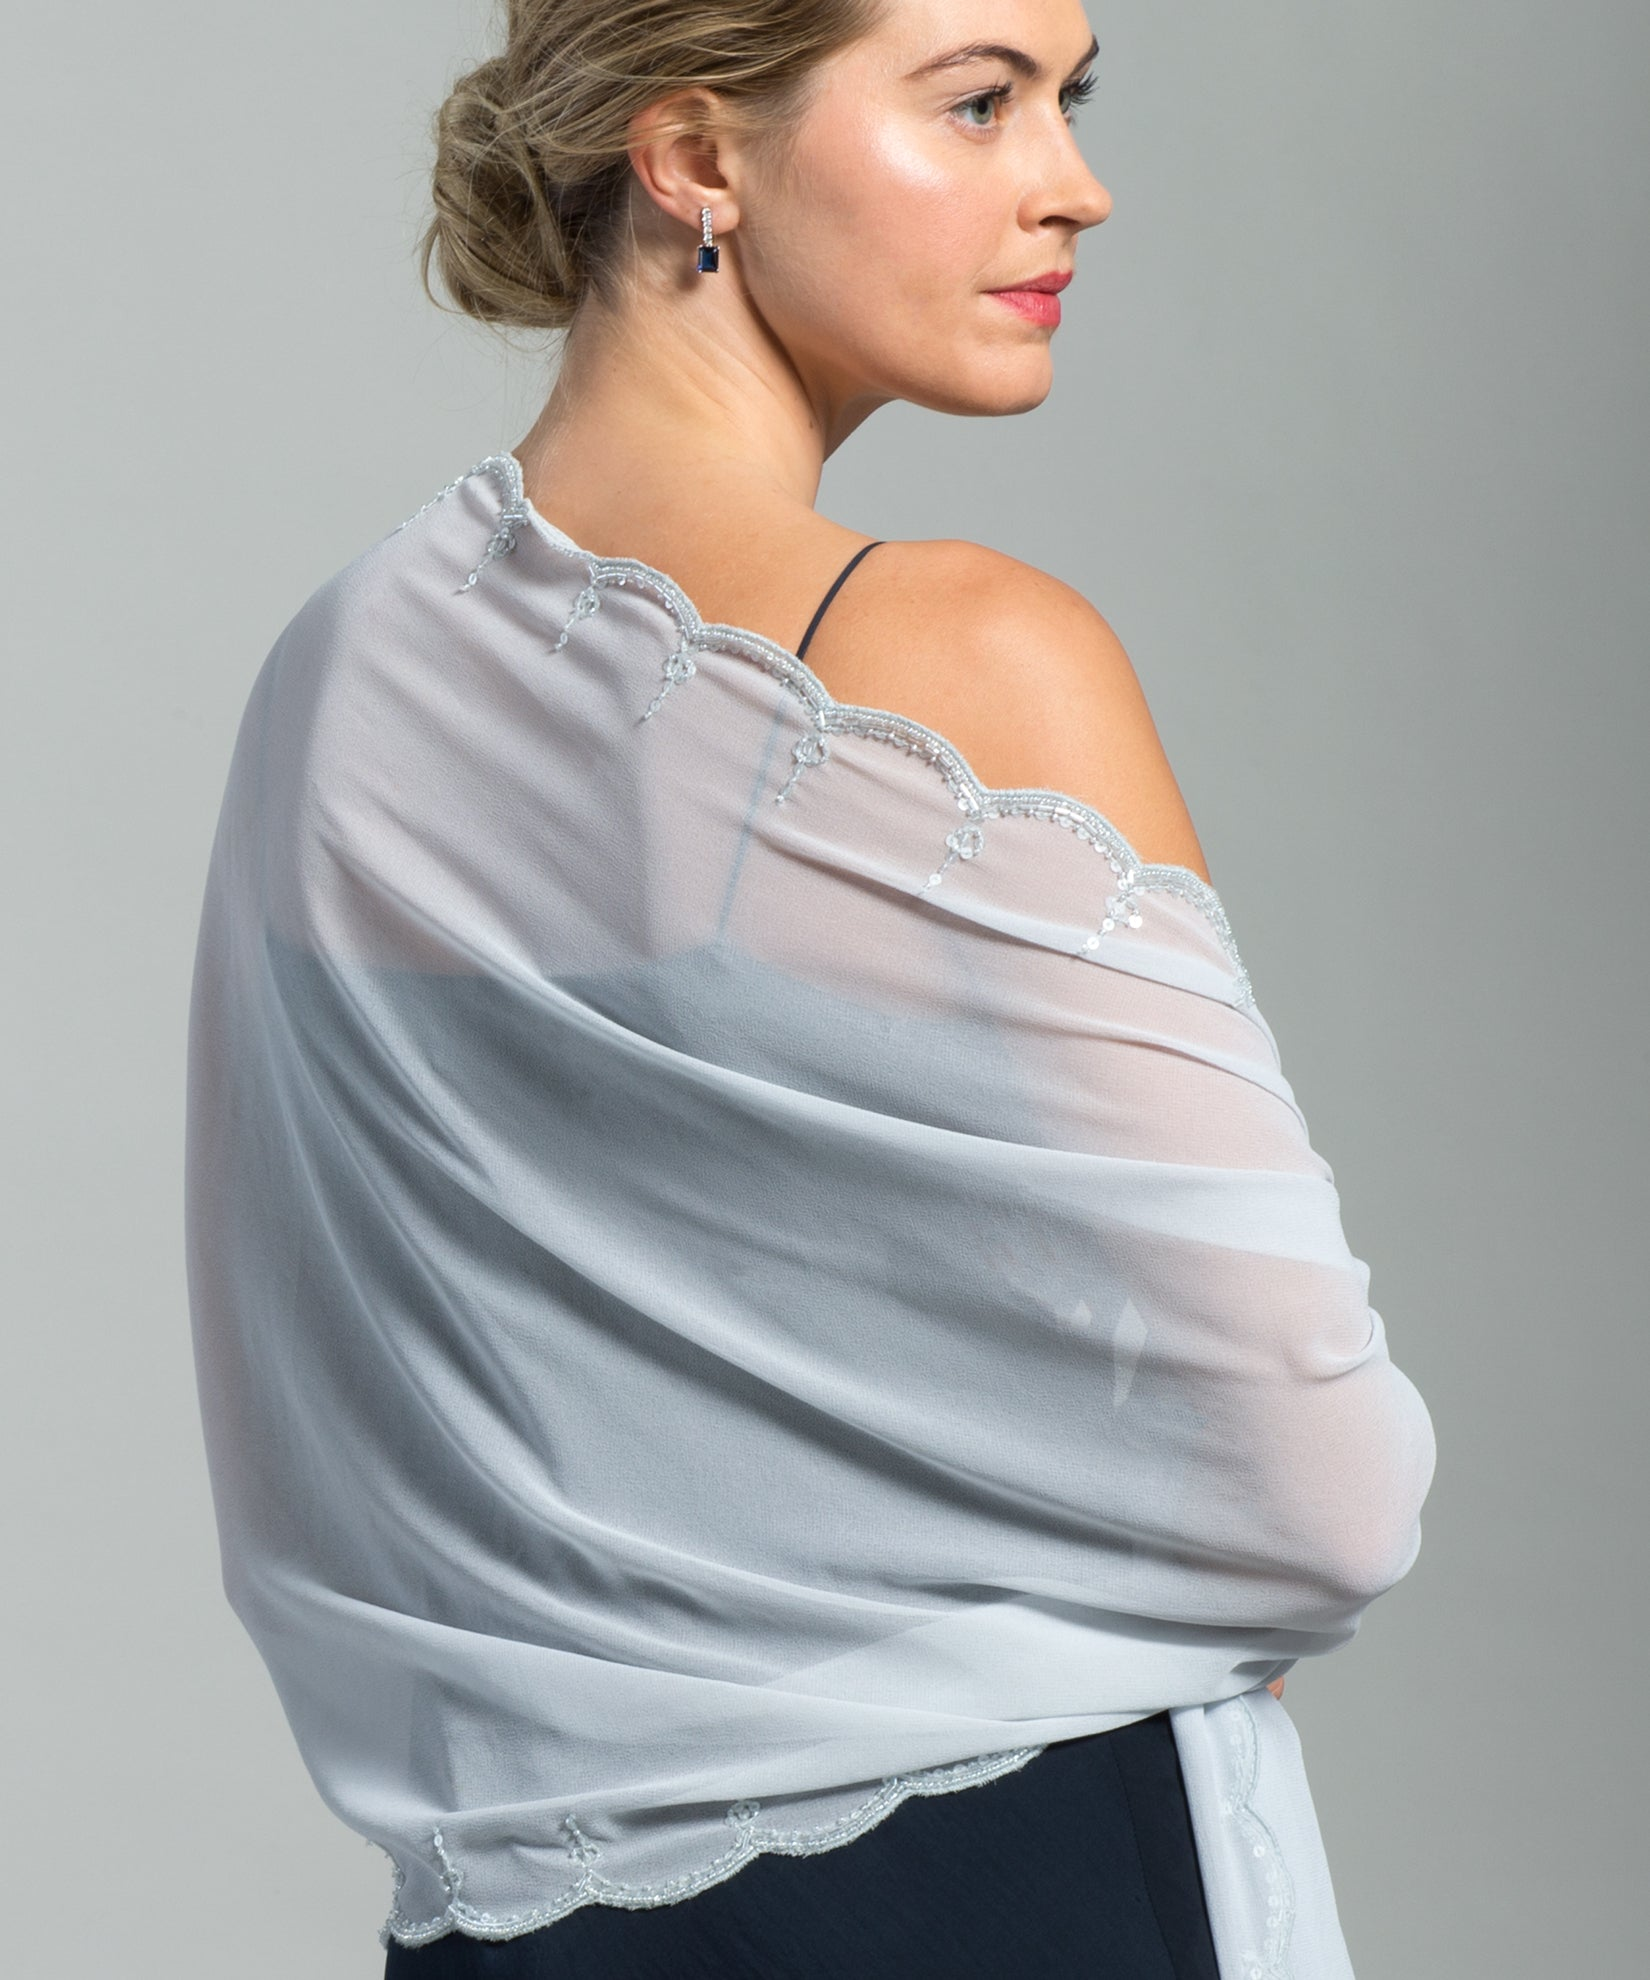 Echo Silver - Scallop Edge Embellished Wrap